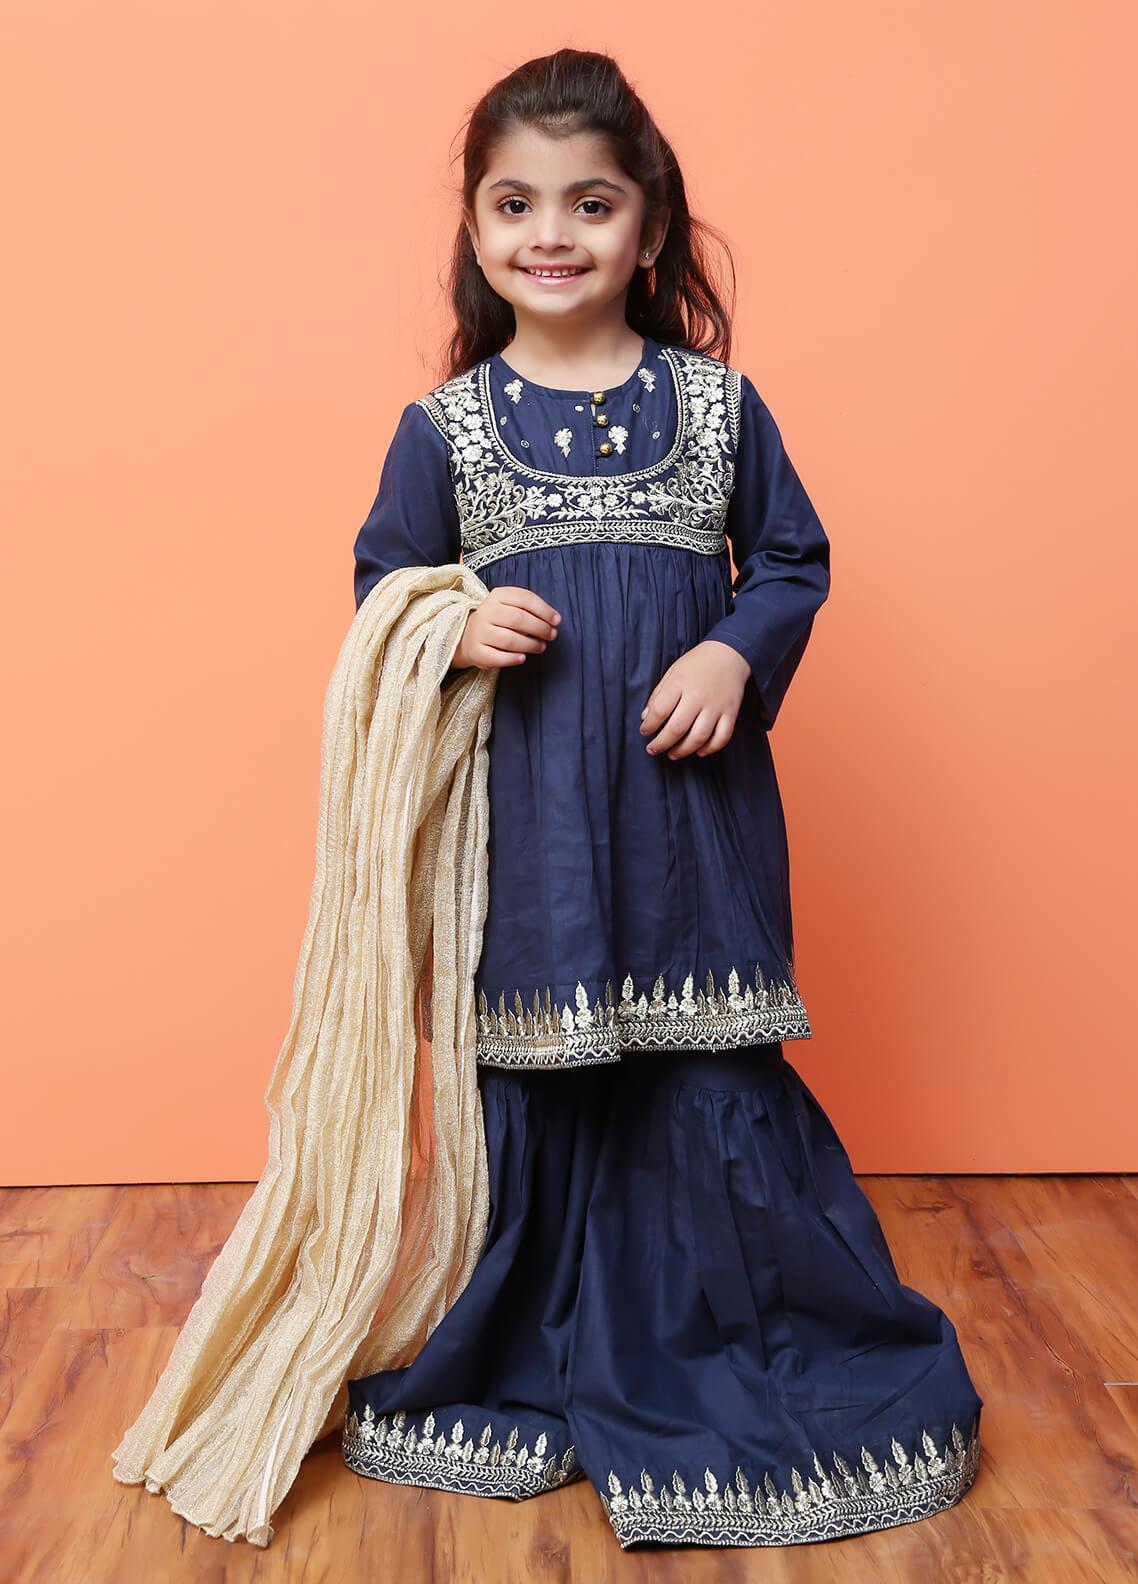 Ochre Cotton Formal 3 Piece Suit for Girls - OFW 189 Navy